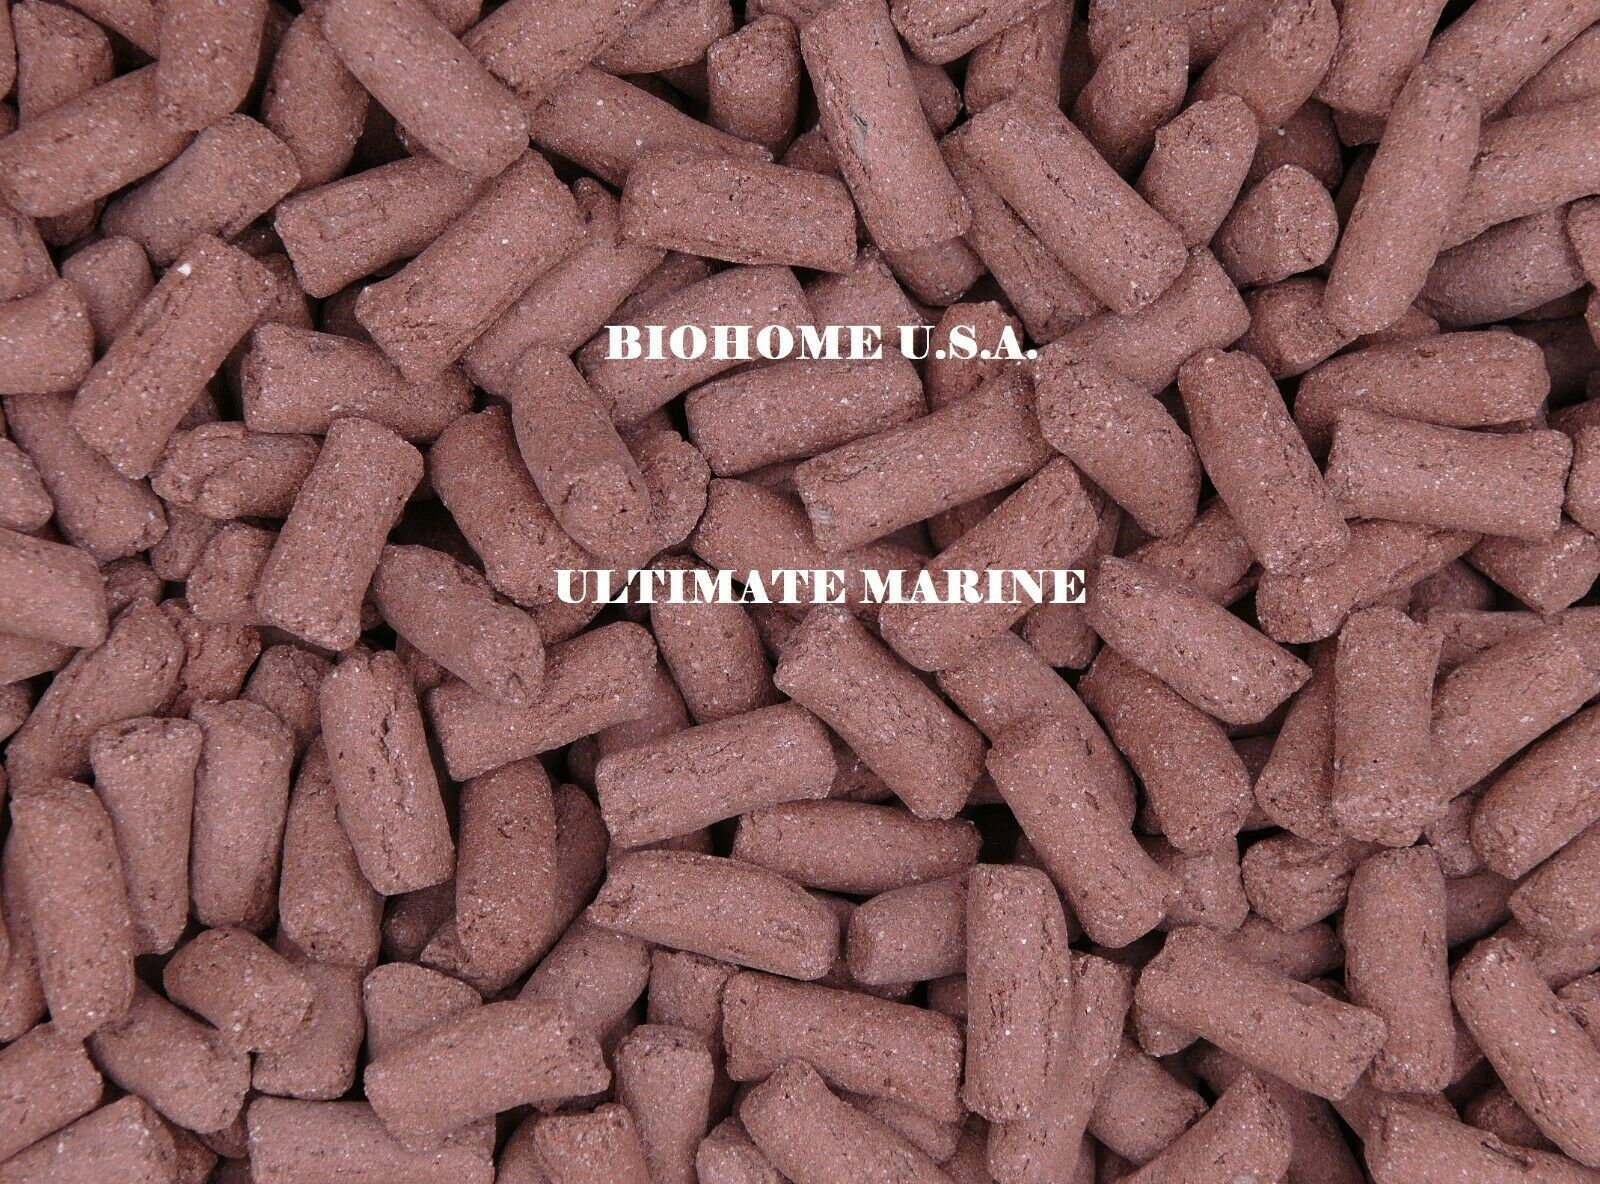 10 LBS BIOHOME ULTIMATE MARINE FILTER MEDIA MEDIUM RED  POUND US SELLER